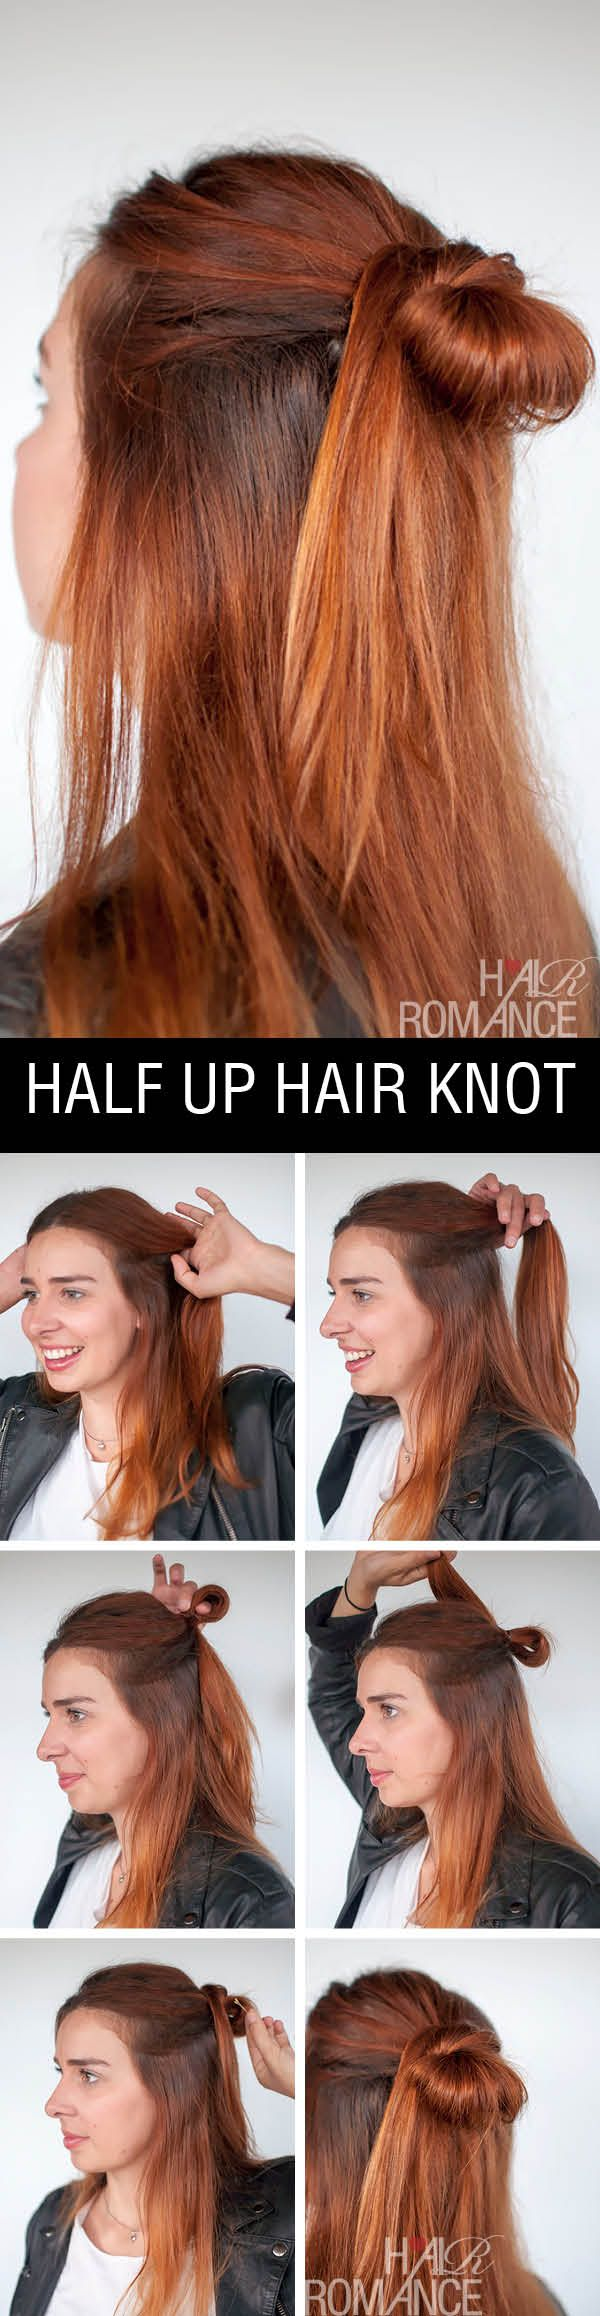 90s Inspired Hairstyle Tutorial The Half Up Hair Knot Beauty